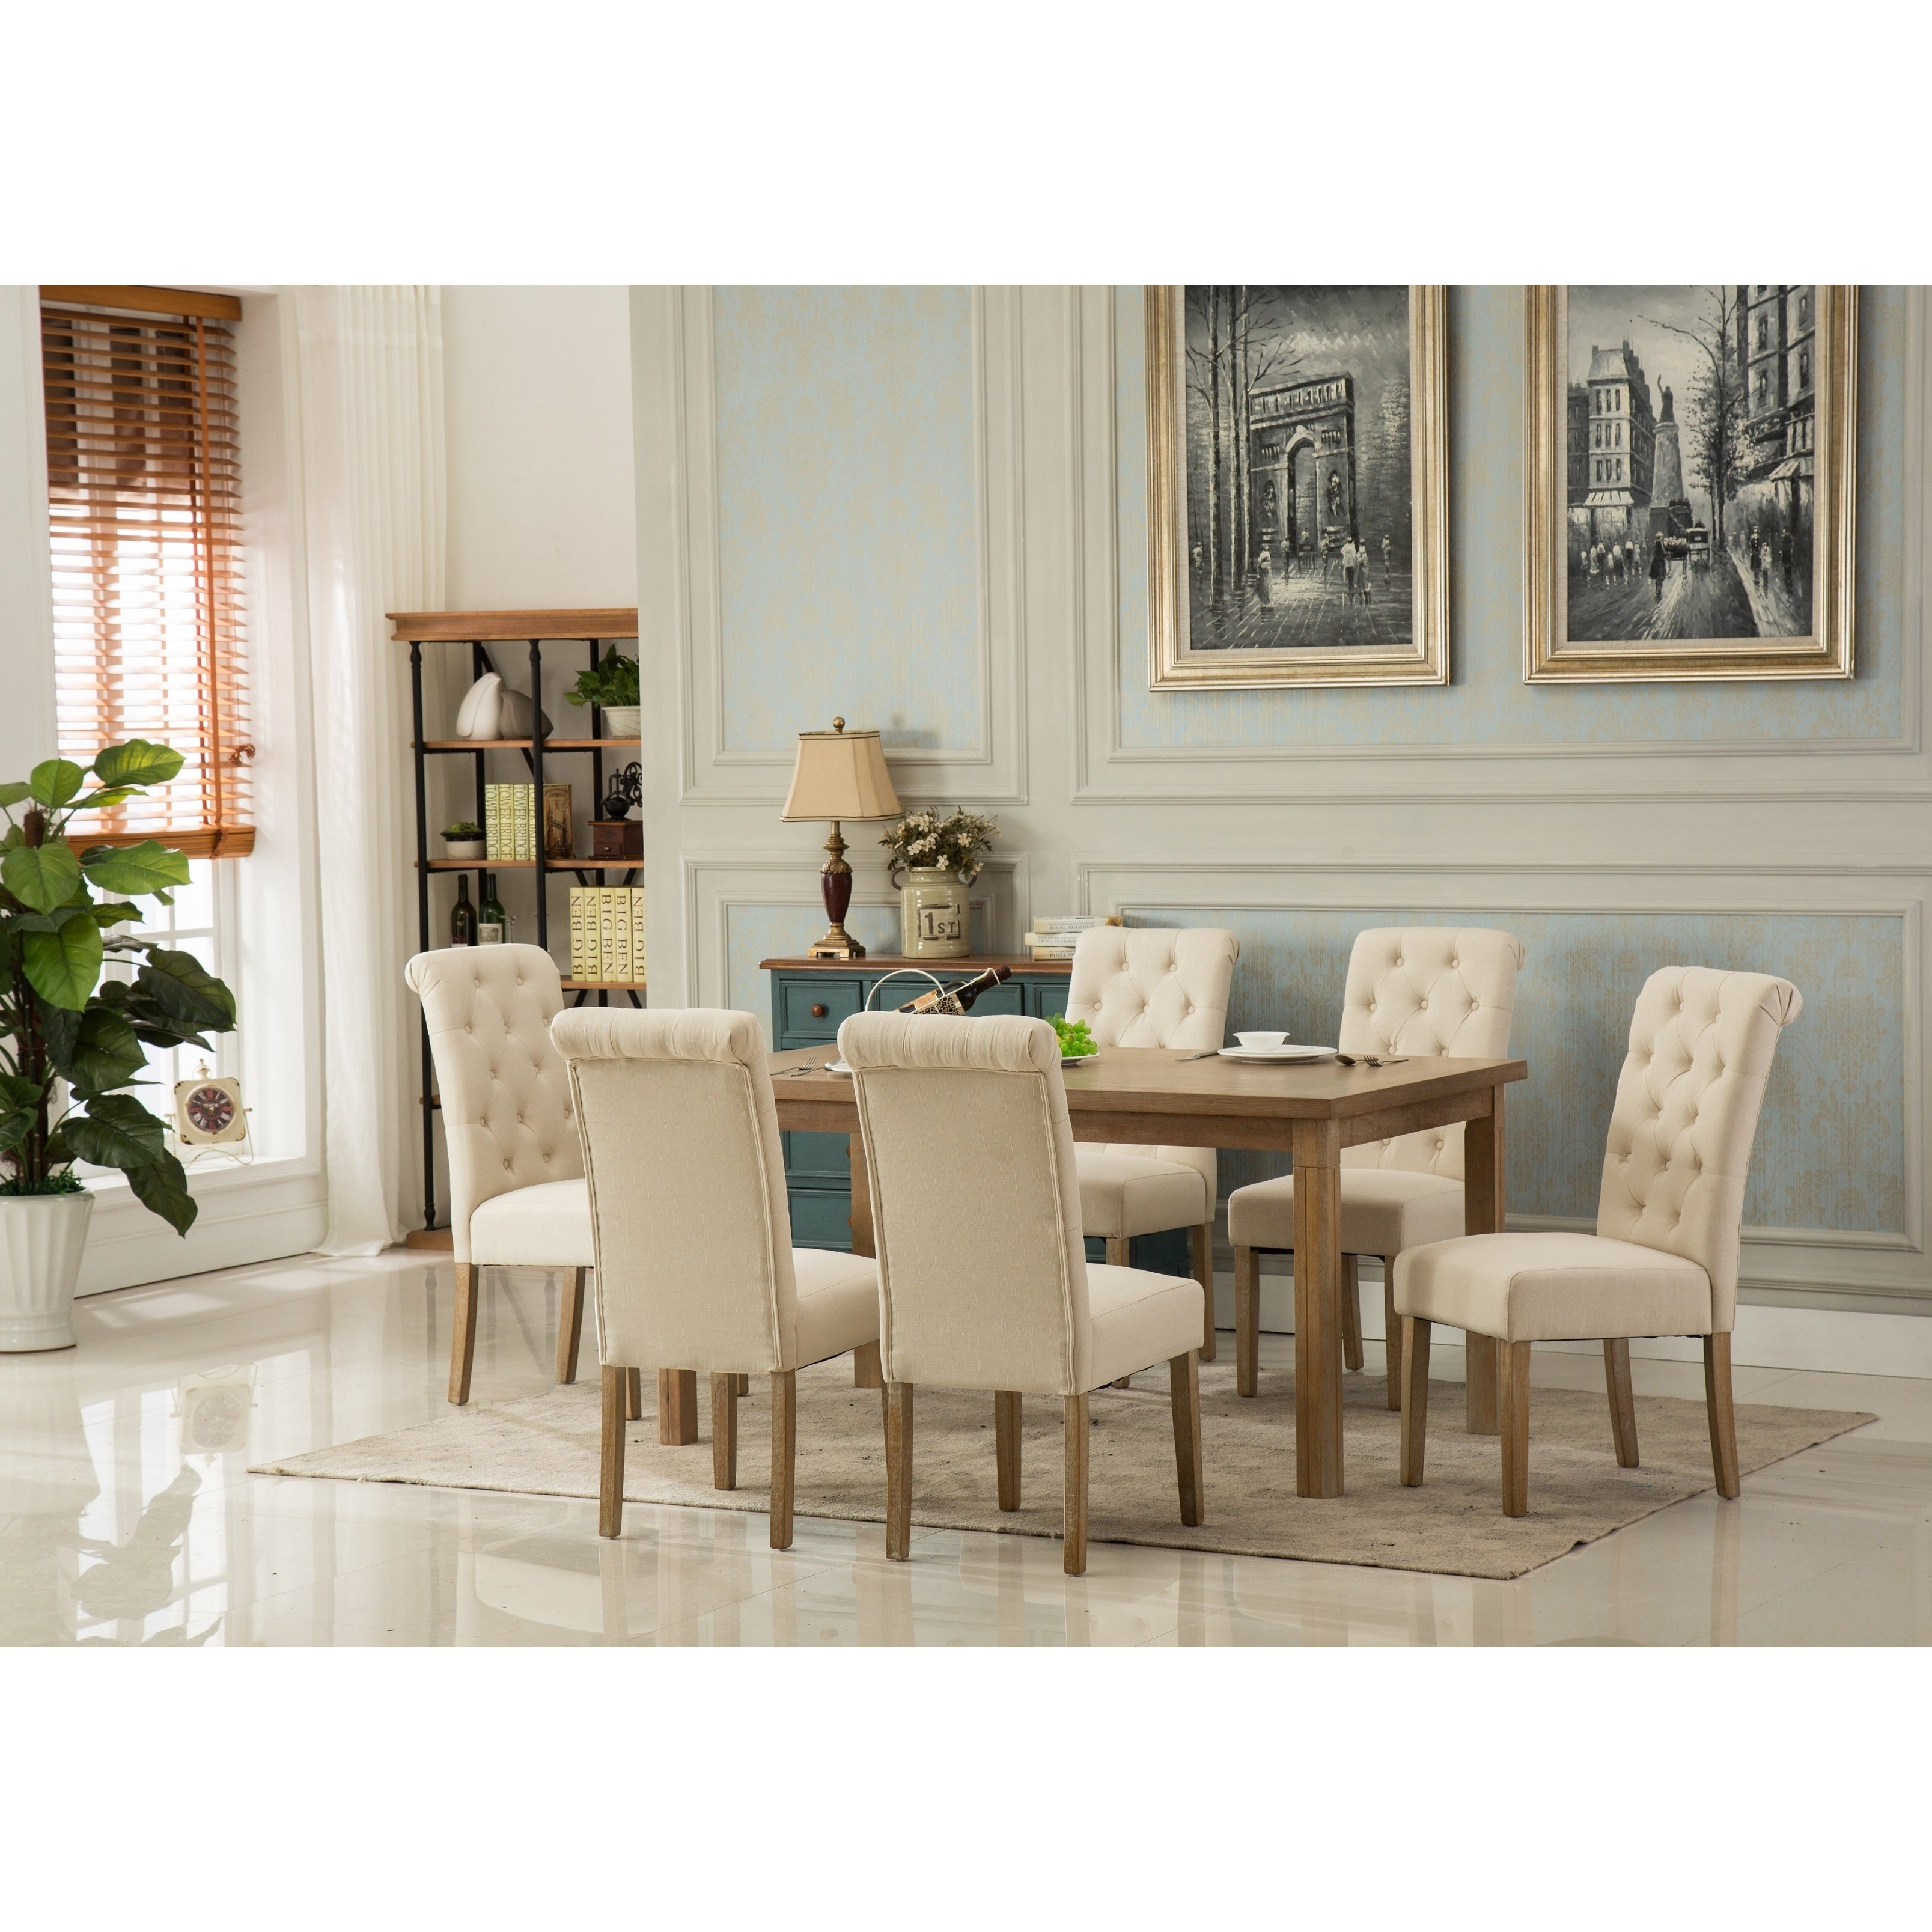 Monotanian Solid Wood Dining Table With 6 Tufted Chairs Overstock 14602686 Grey